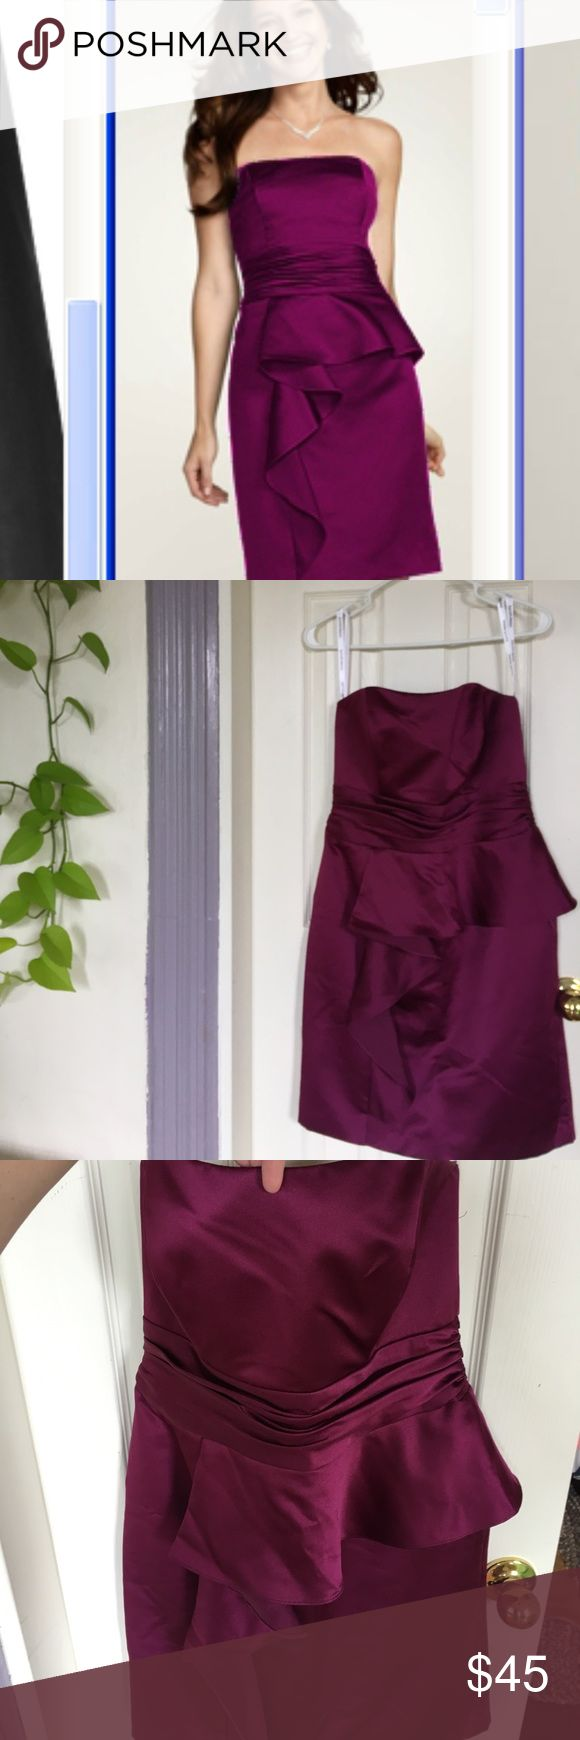 David's Bridal Sangria strapless dress. Size 8 Satin David's Bridal bridesmaid dress. Color: Sangria, Size 8. Only wore this once (for a wedding). Perfect condition and no stains, rips, etc. Just needs a steaming and it's good to go! davids bridal Dresses Wedding